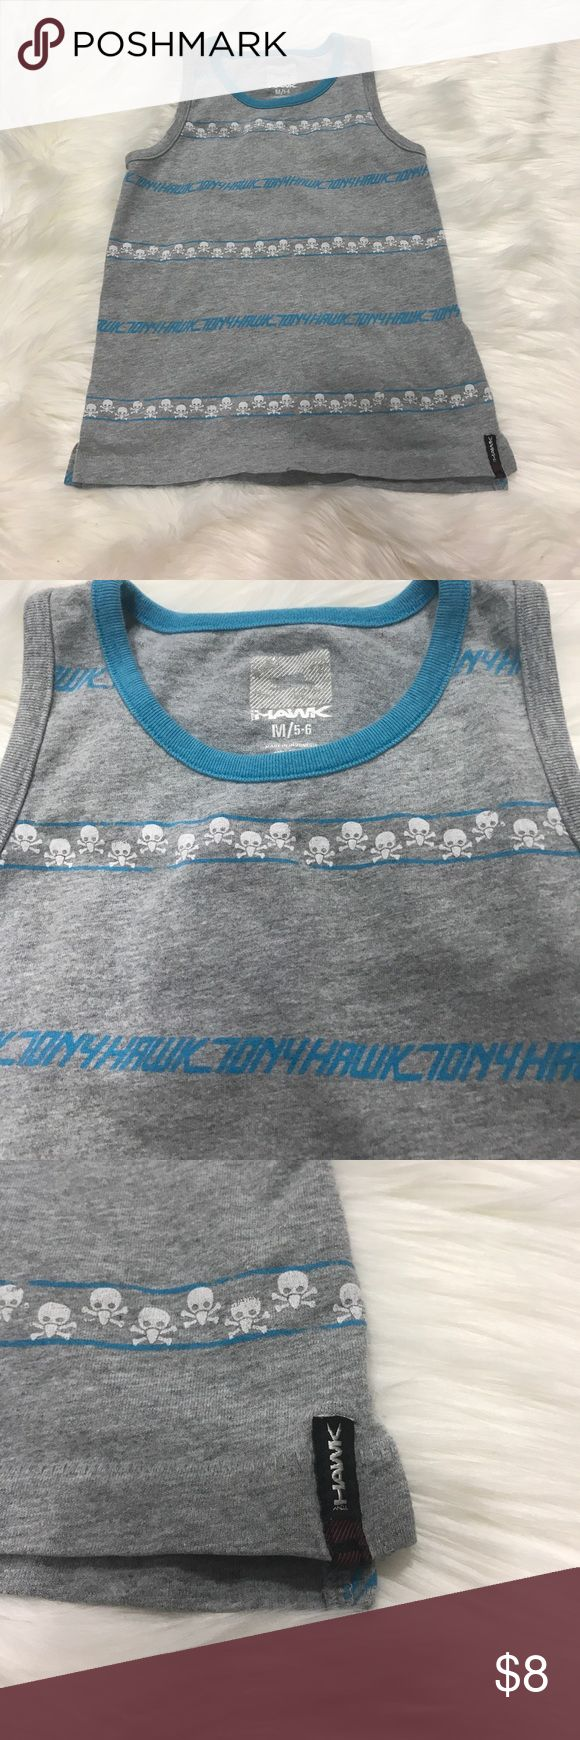 Super bro boys Tony Hawk tank top Rad boys Tony Hawk tank top in a size M (5/6) in excellent preowned condition! Cute skull and crossbones all over it. A must have for any skater dude!  I always give great discounts on my kids gear, so make sure you bundle to save! I'll send over an offer just for you! 🐼 Tony Hawk Shirts & Tops Tank Tops